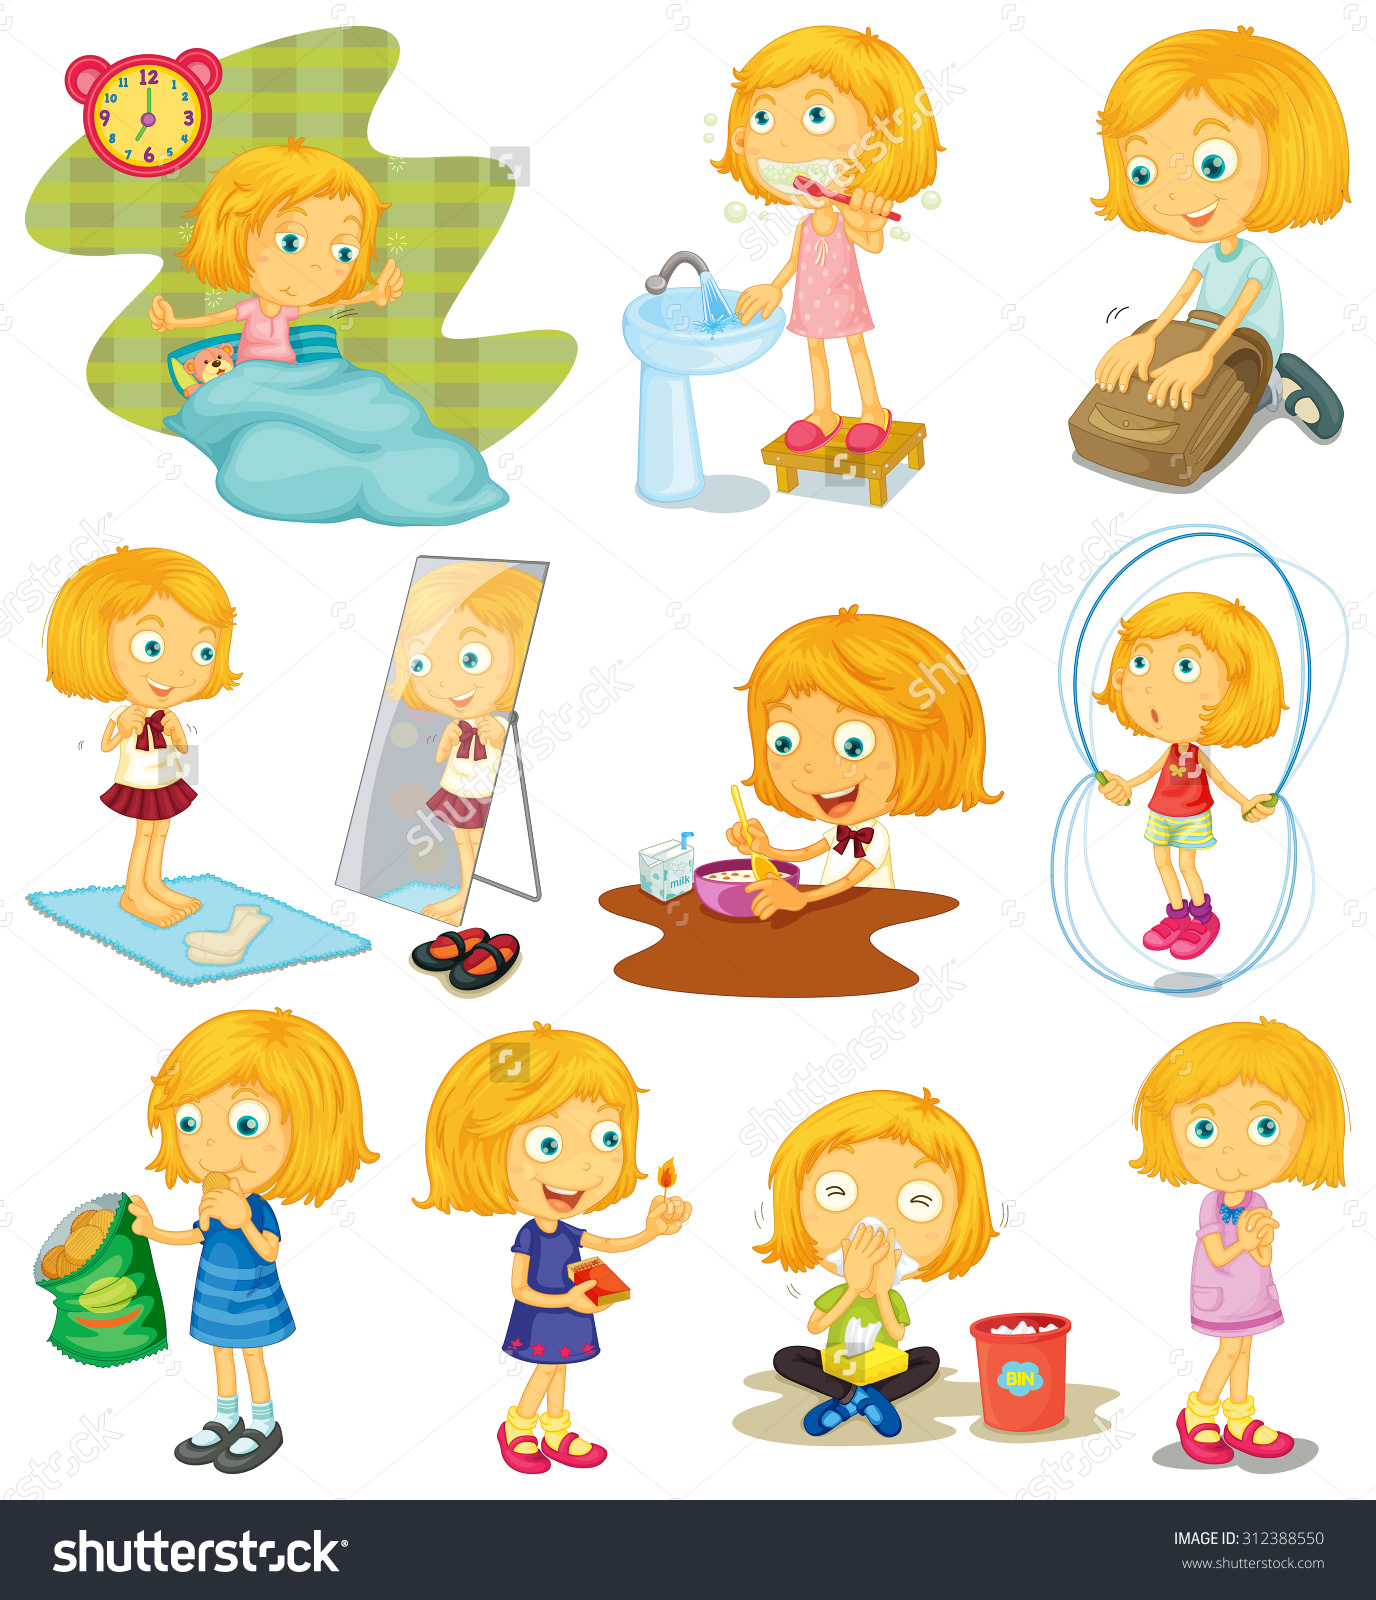 Clipart daily routine clip art freeuse library Daily routine clipart 10 » Clipart Station clip art freeuse library